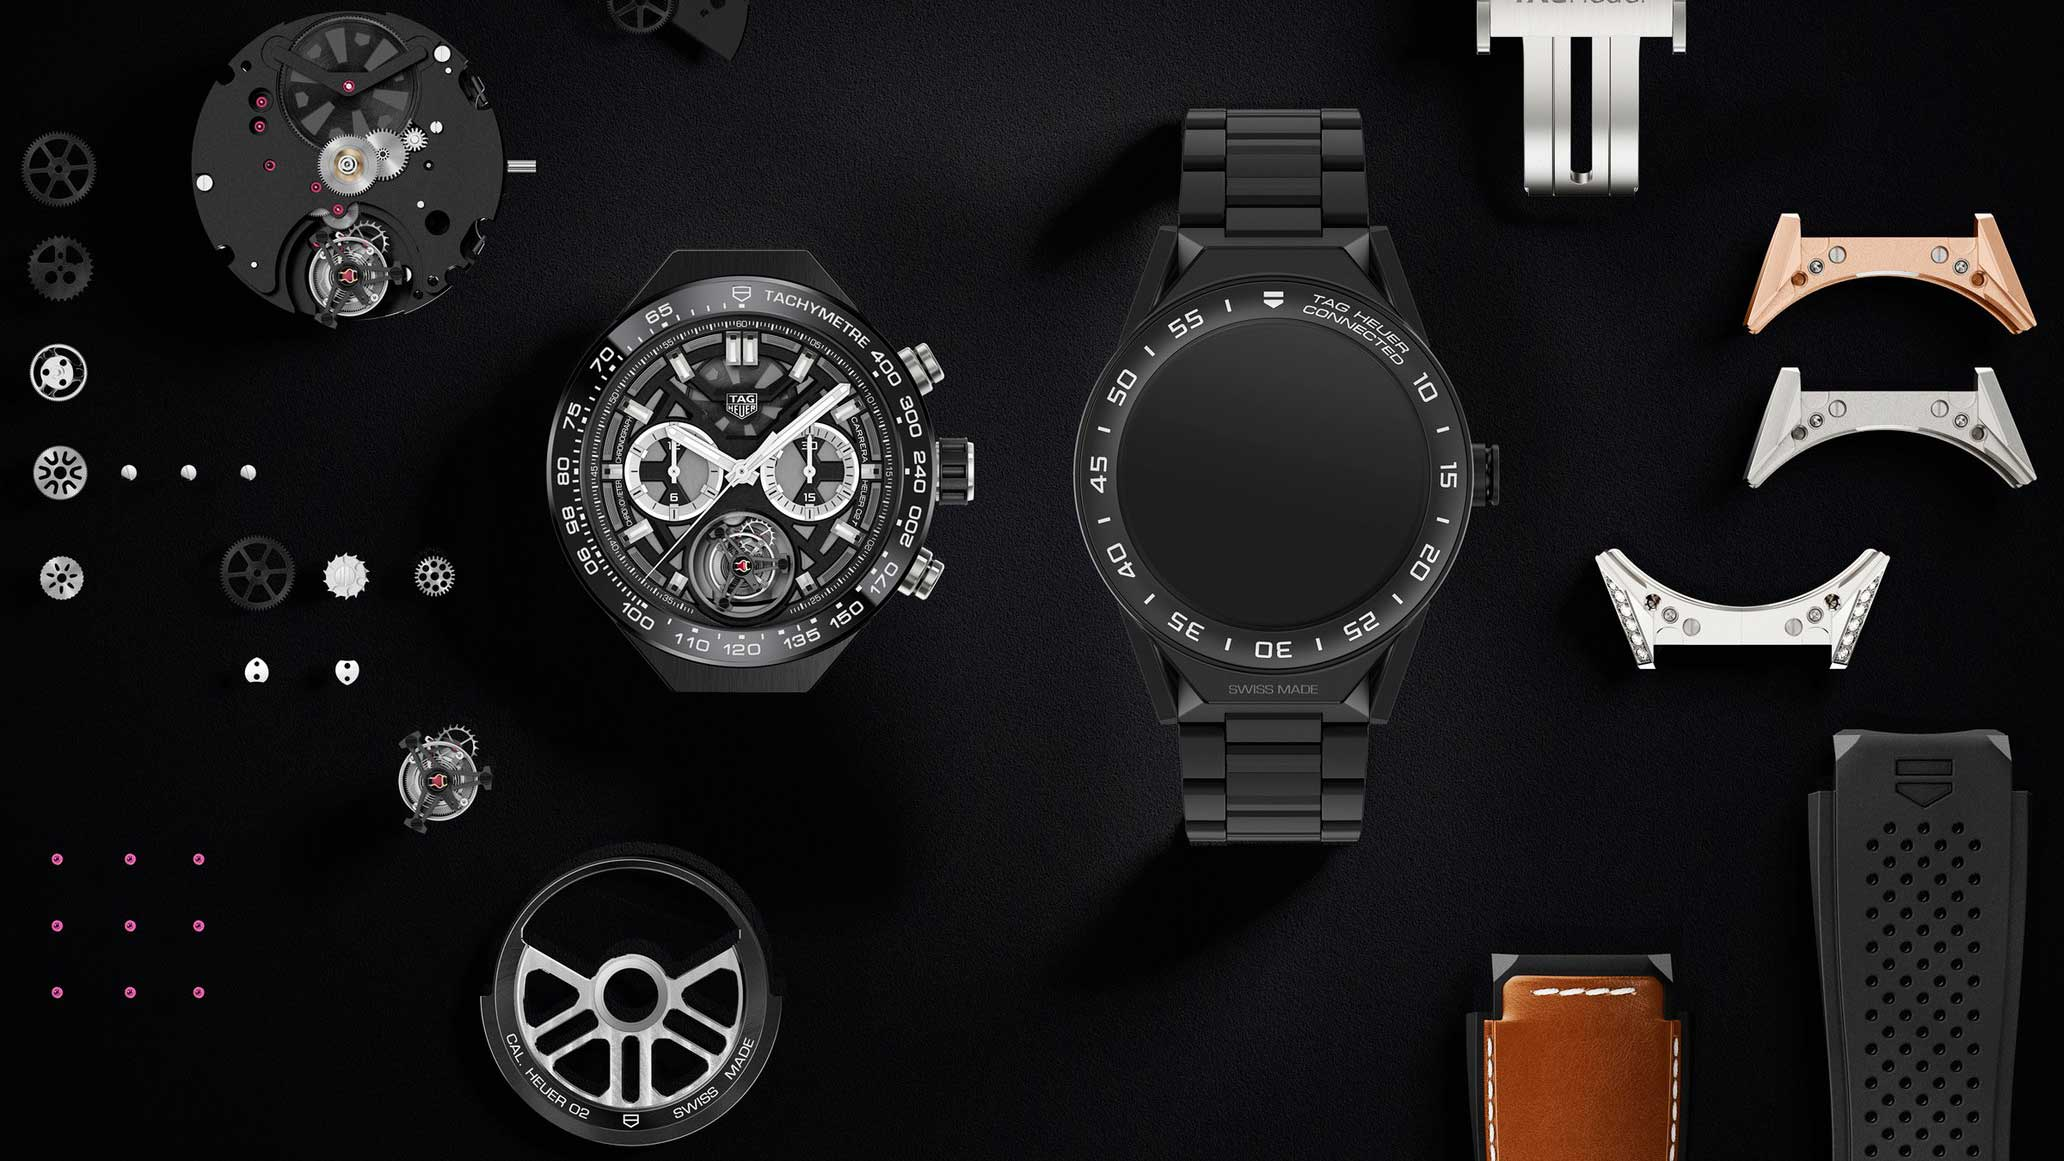 tag heuer modular smartwatch - tag heuer android smartwatch